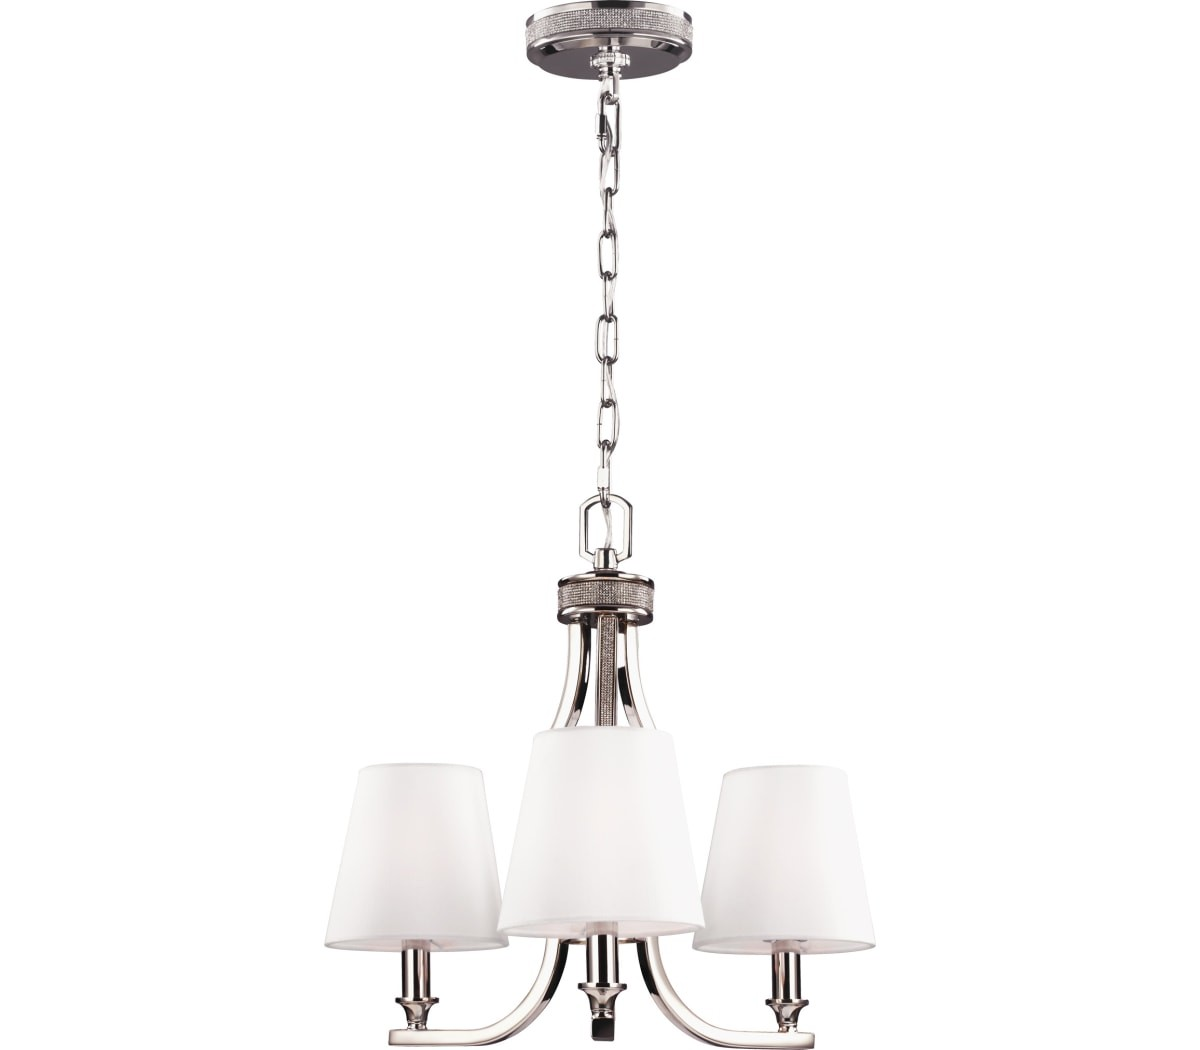 murray feiss pave feiss-pave-chandelier-1